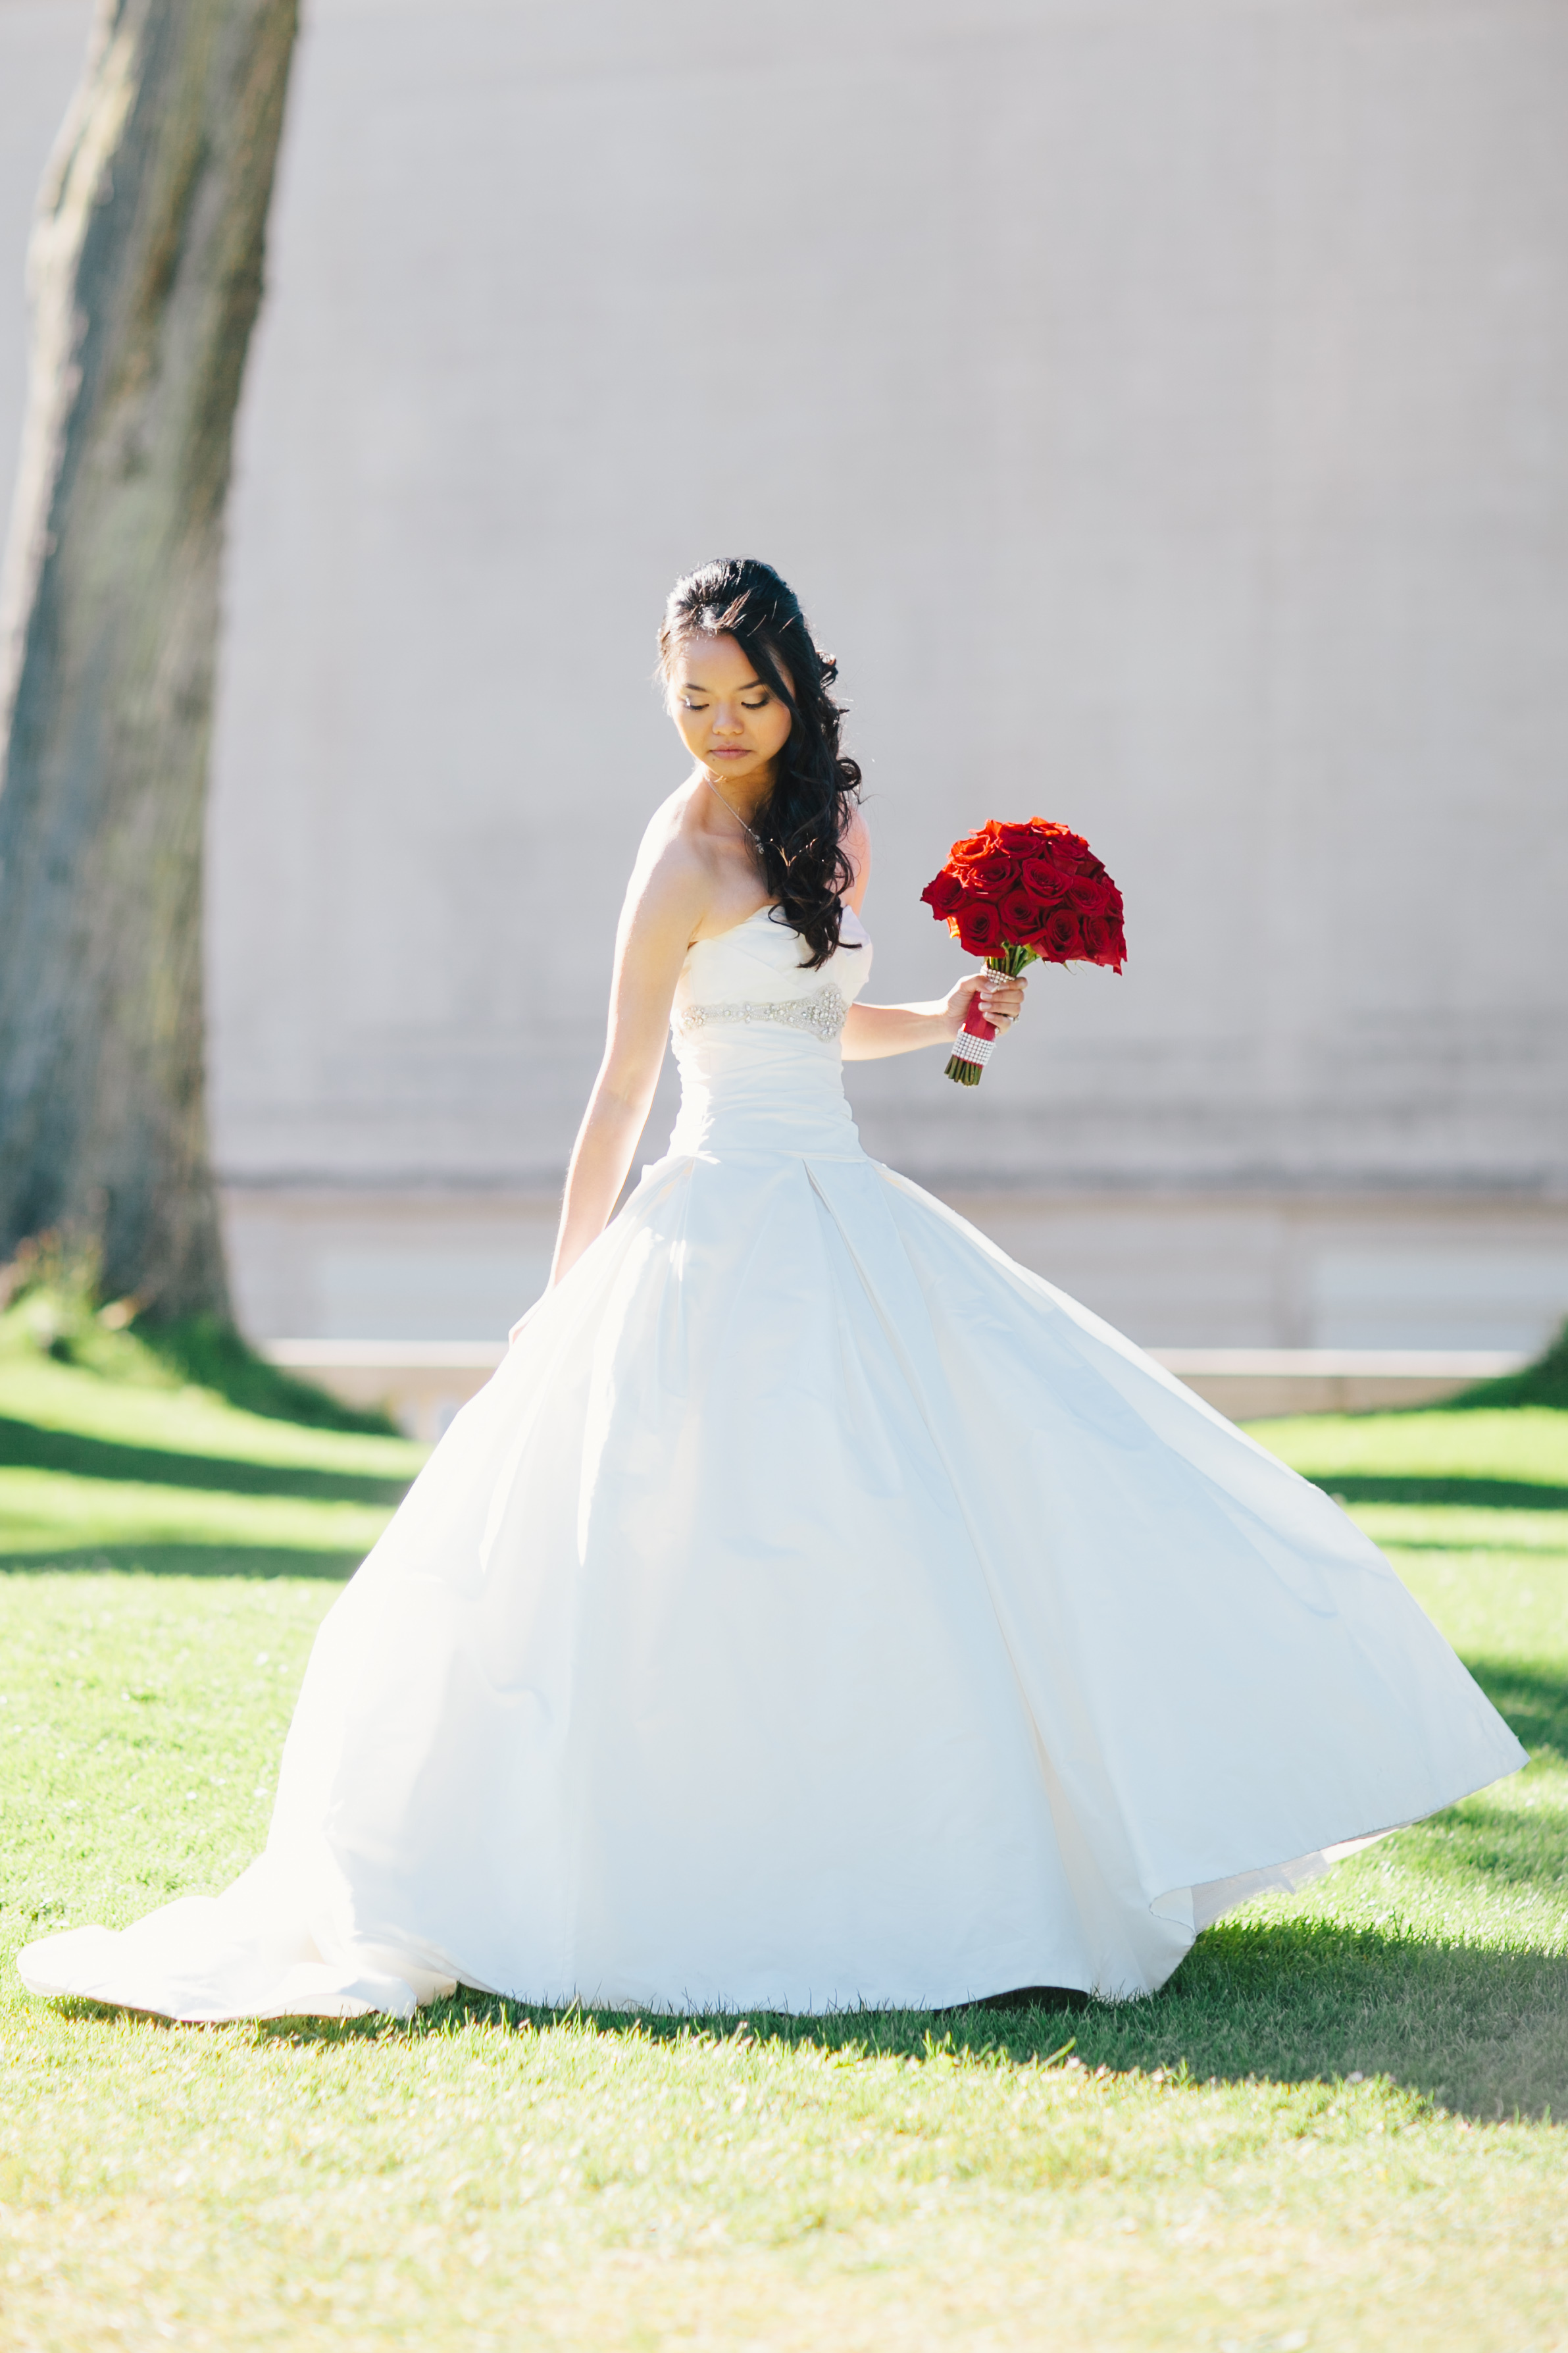 red, Bride, Roses, Bouquet, Gown, Wedding, Ballgown, Blanca, Paloma, Wendy jason